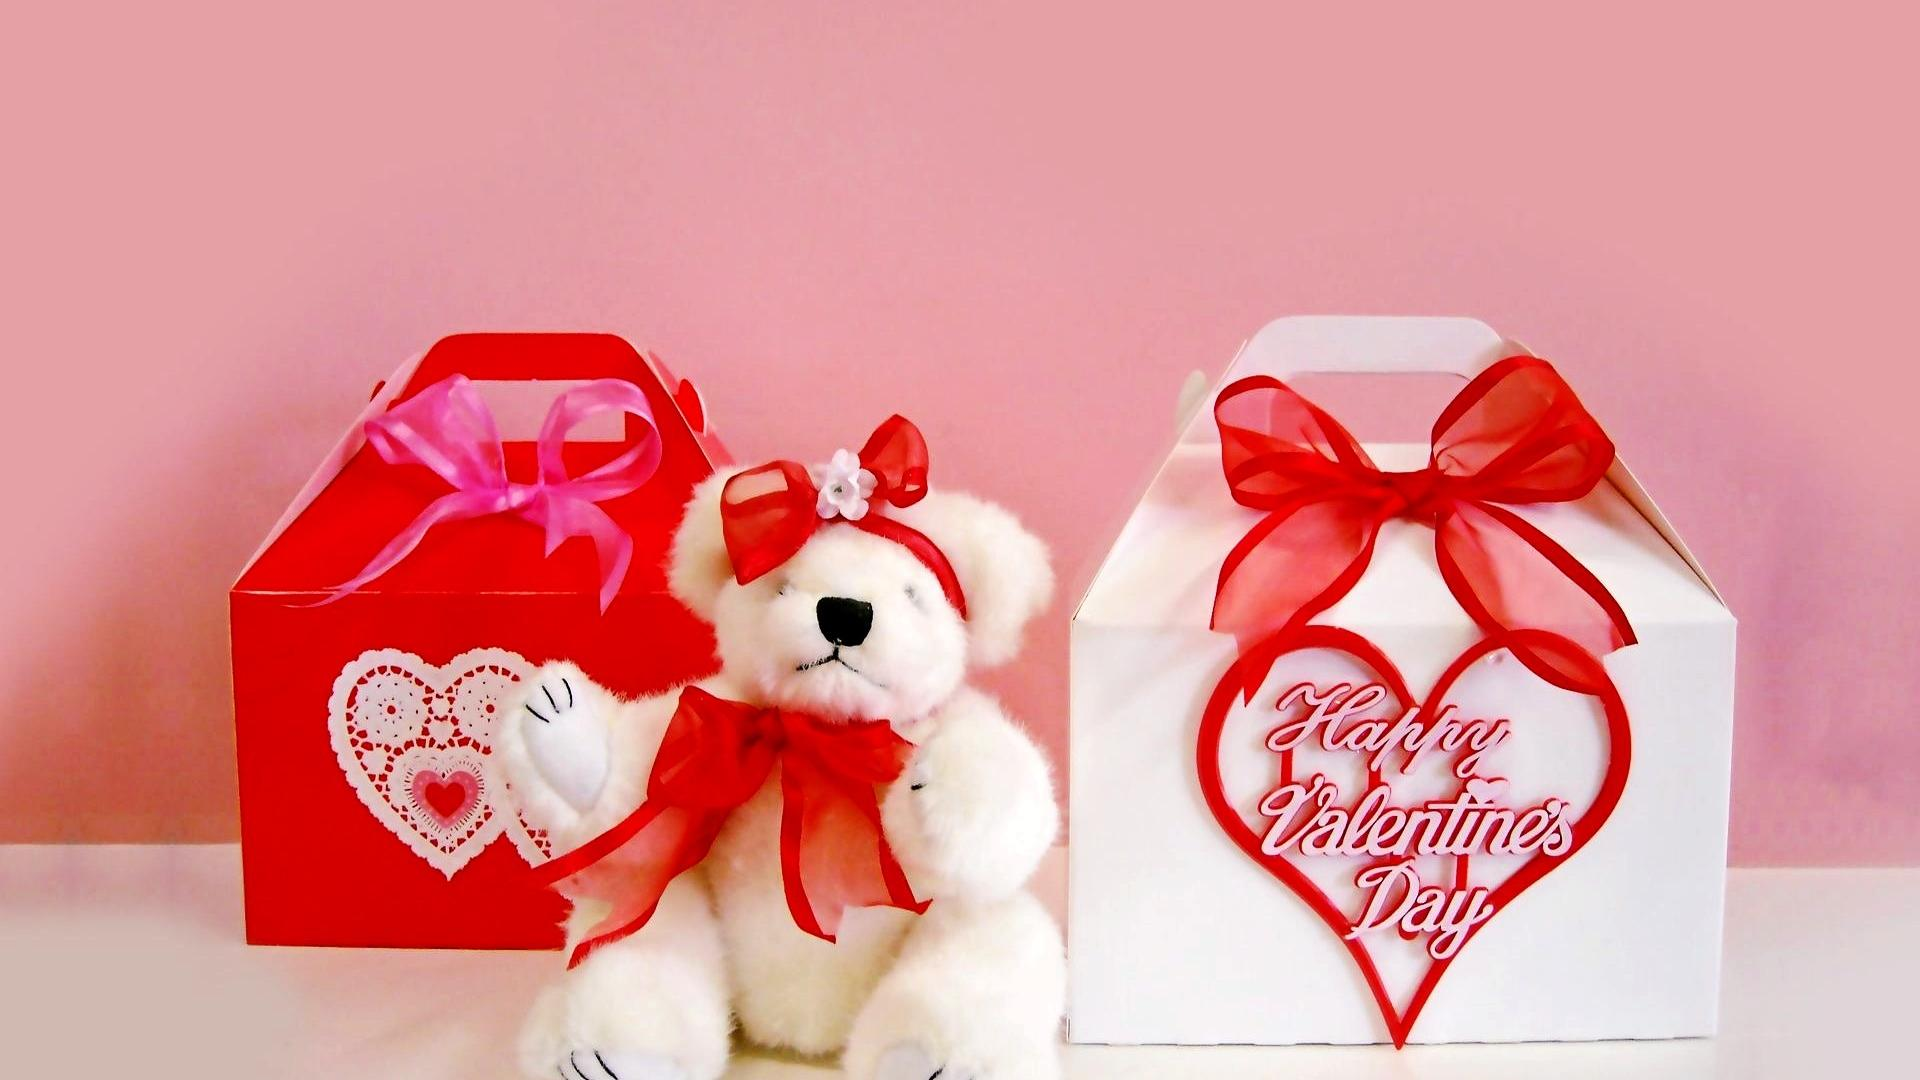 24 Incredibly Beautiful Valentines Day Desktop Wallpapers Web Design 1920x1080